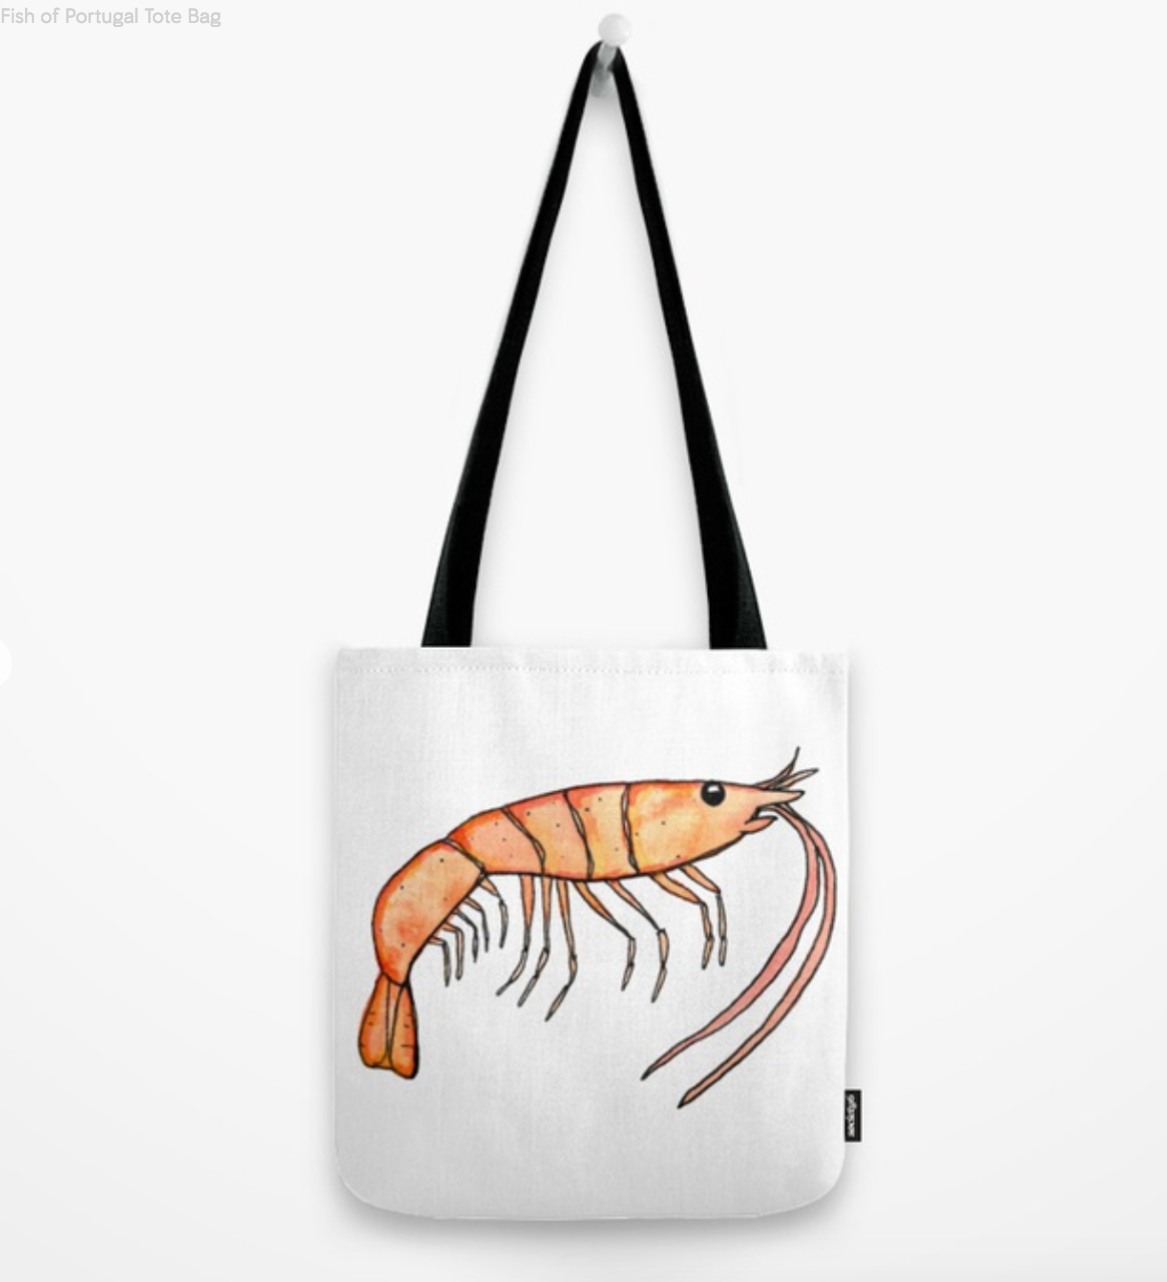 Get yourself a shrimp tote!